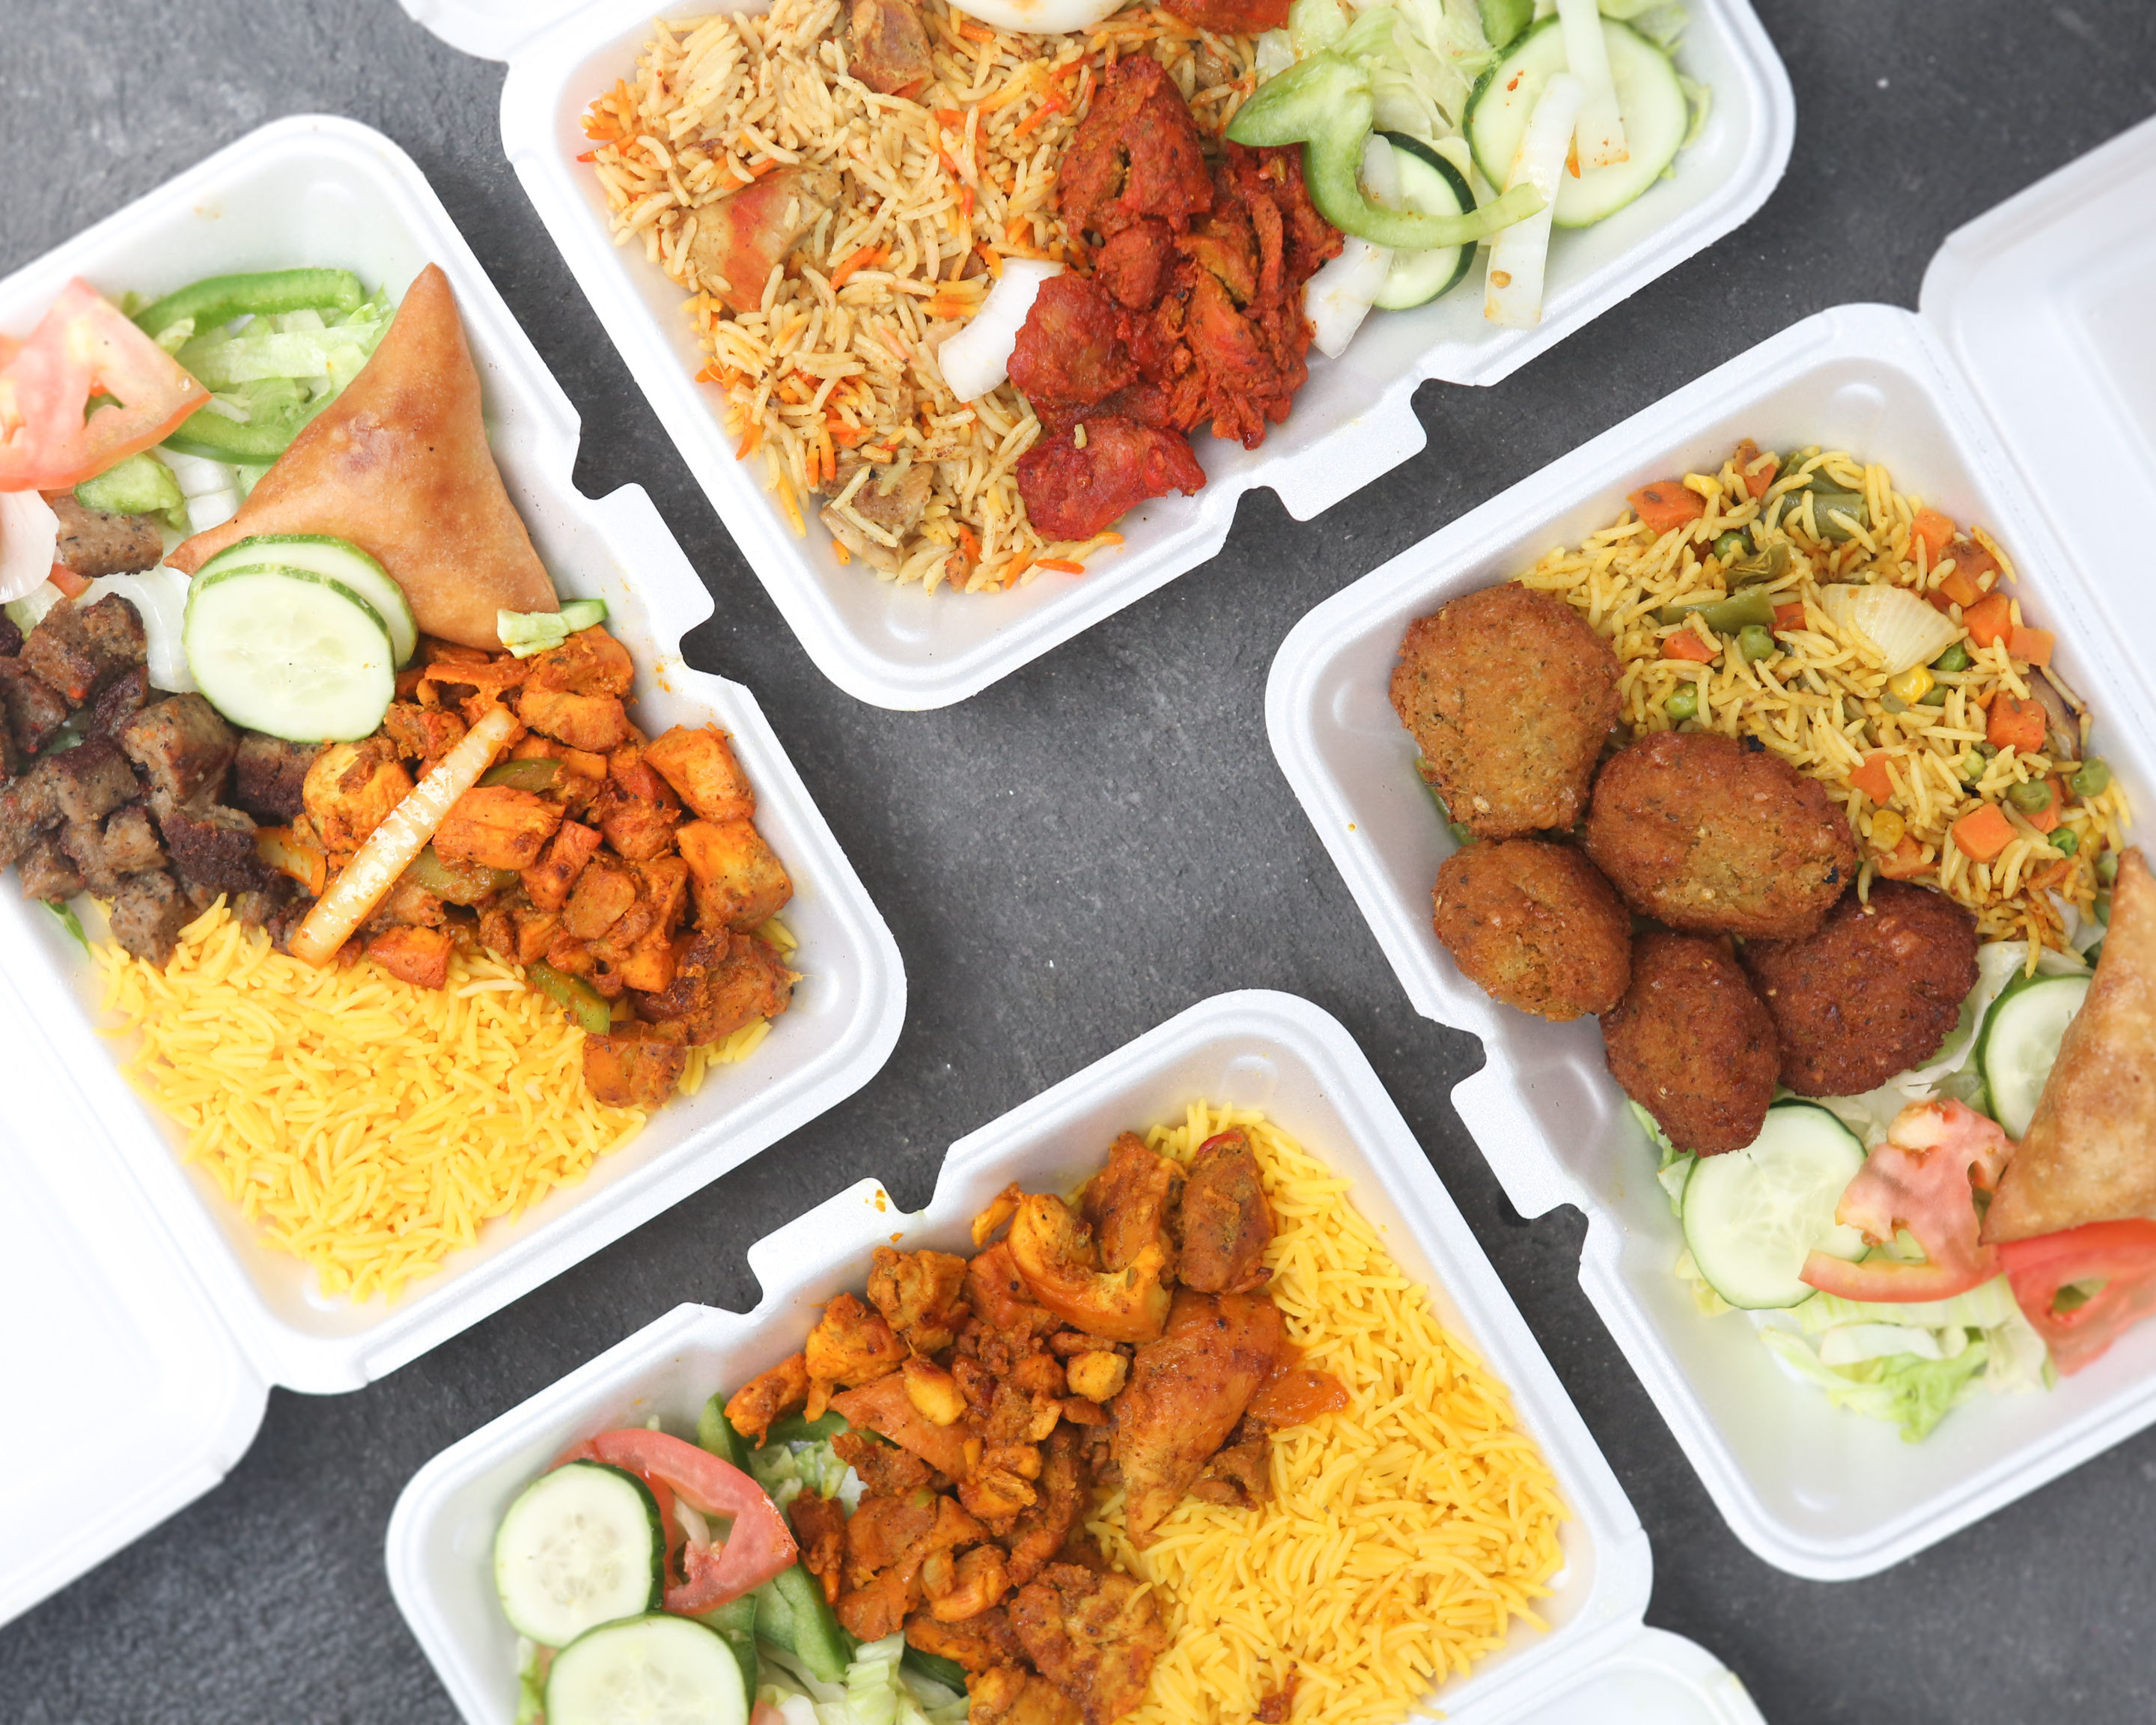 Order Royal Grill Halal Food Delivery Online New York City Menu Prices Uber Eats